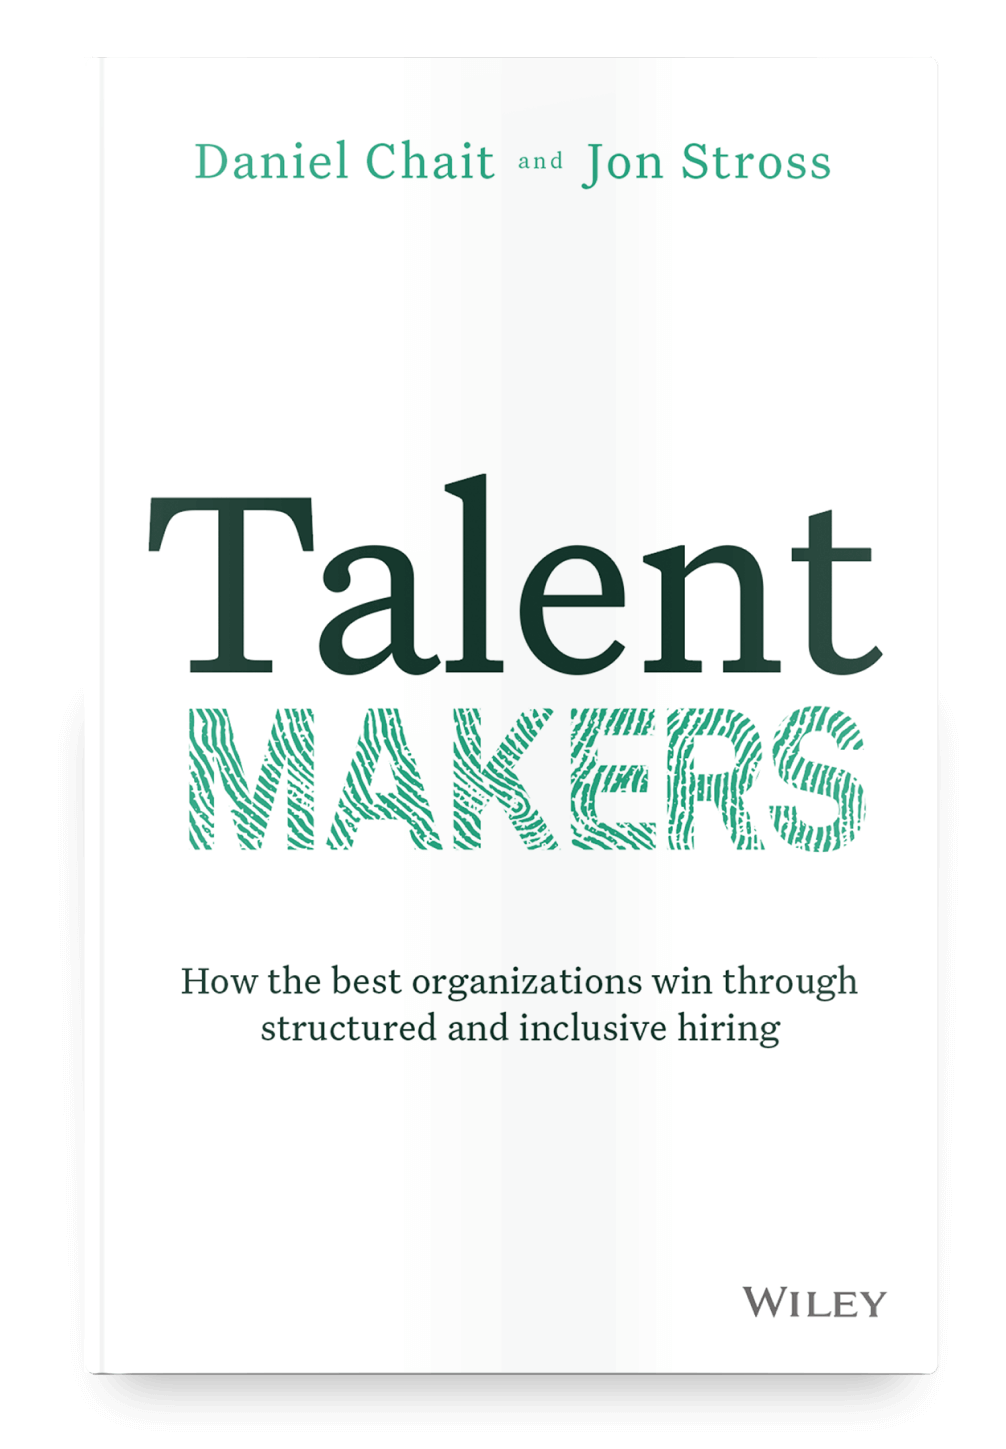 Image of the Talent Makers book cover